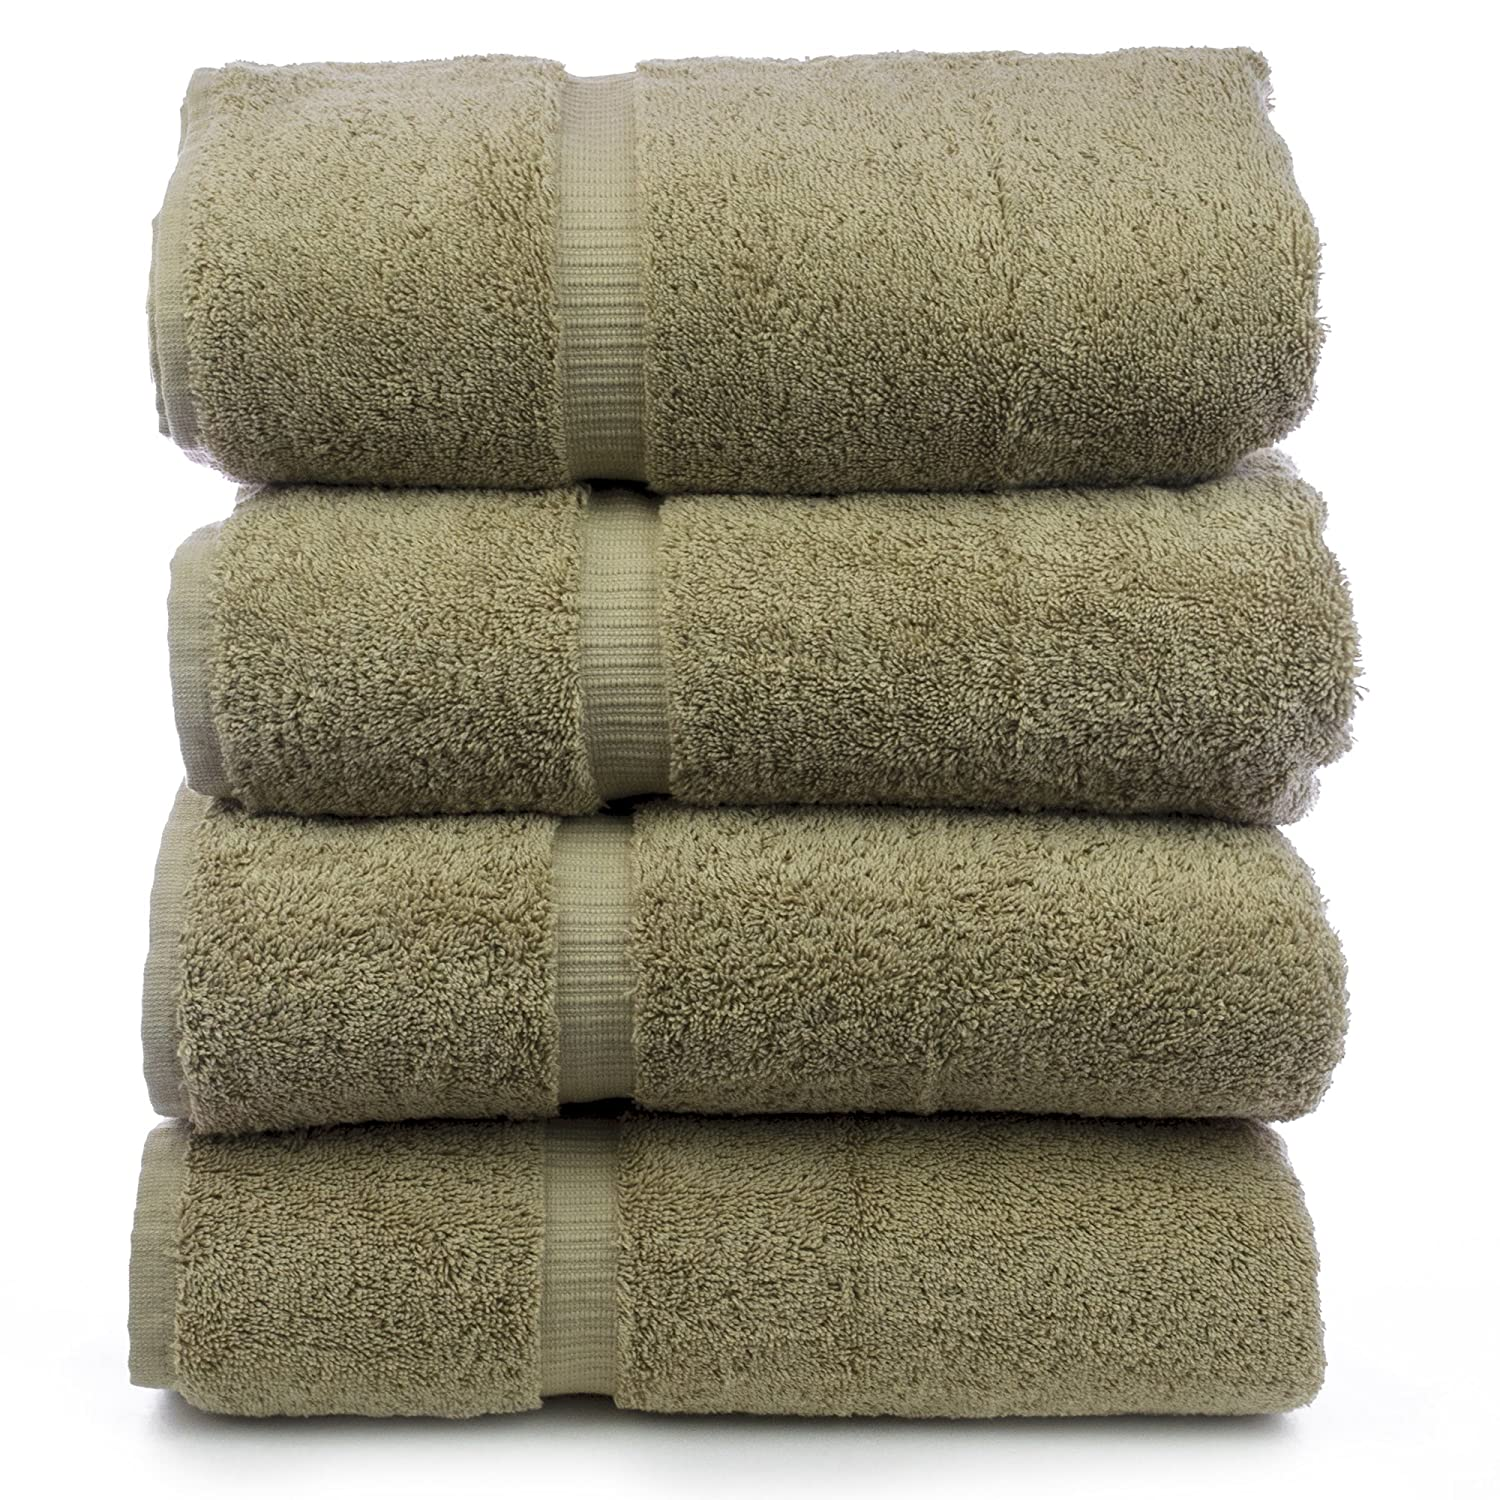 Luxury Hotel & Spa Bath Towel 100% Genuine Turkish Cotton, Set of 4 (Driftwood)